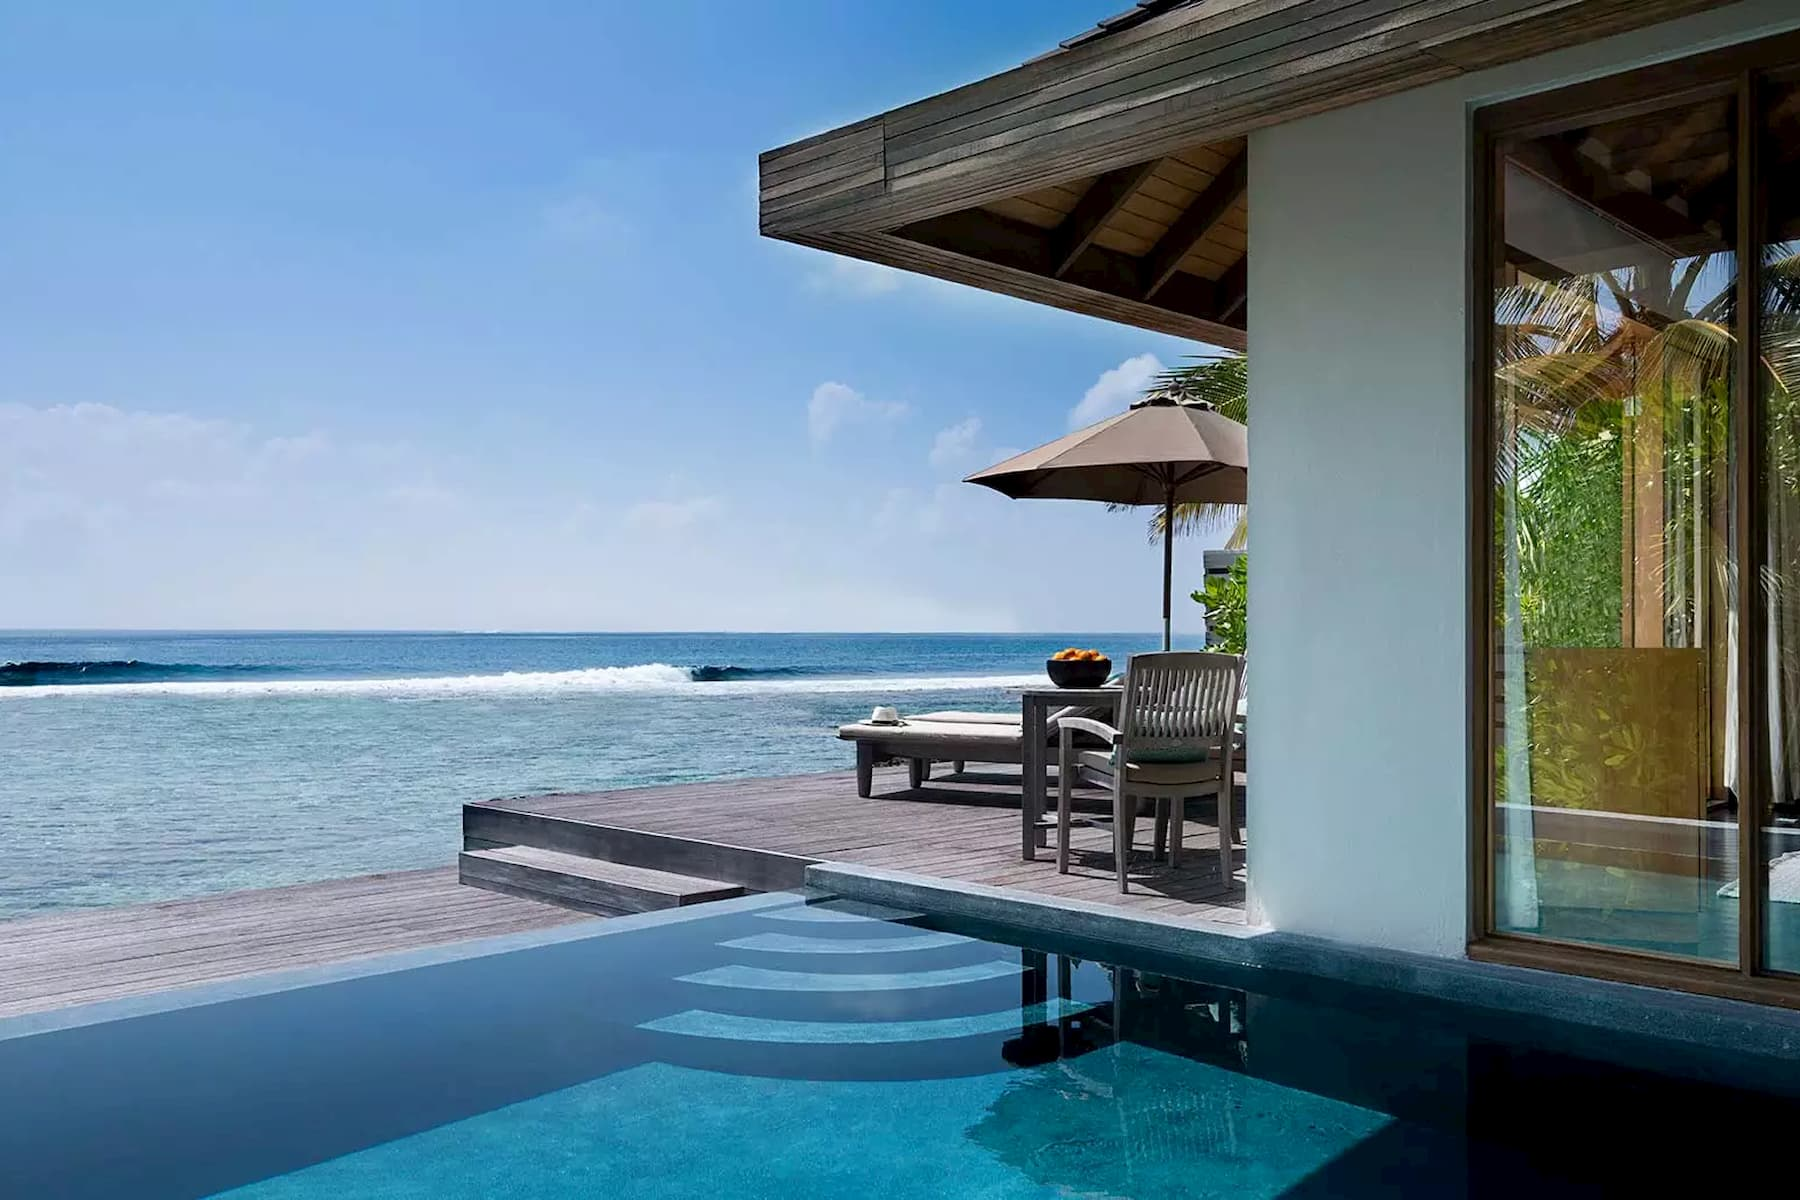 Anantara Veli Resort Maldive ocean pool bungalow